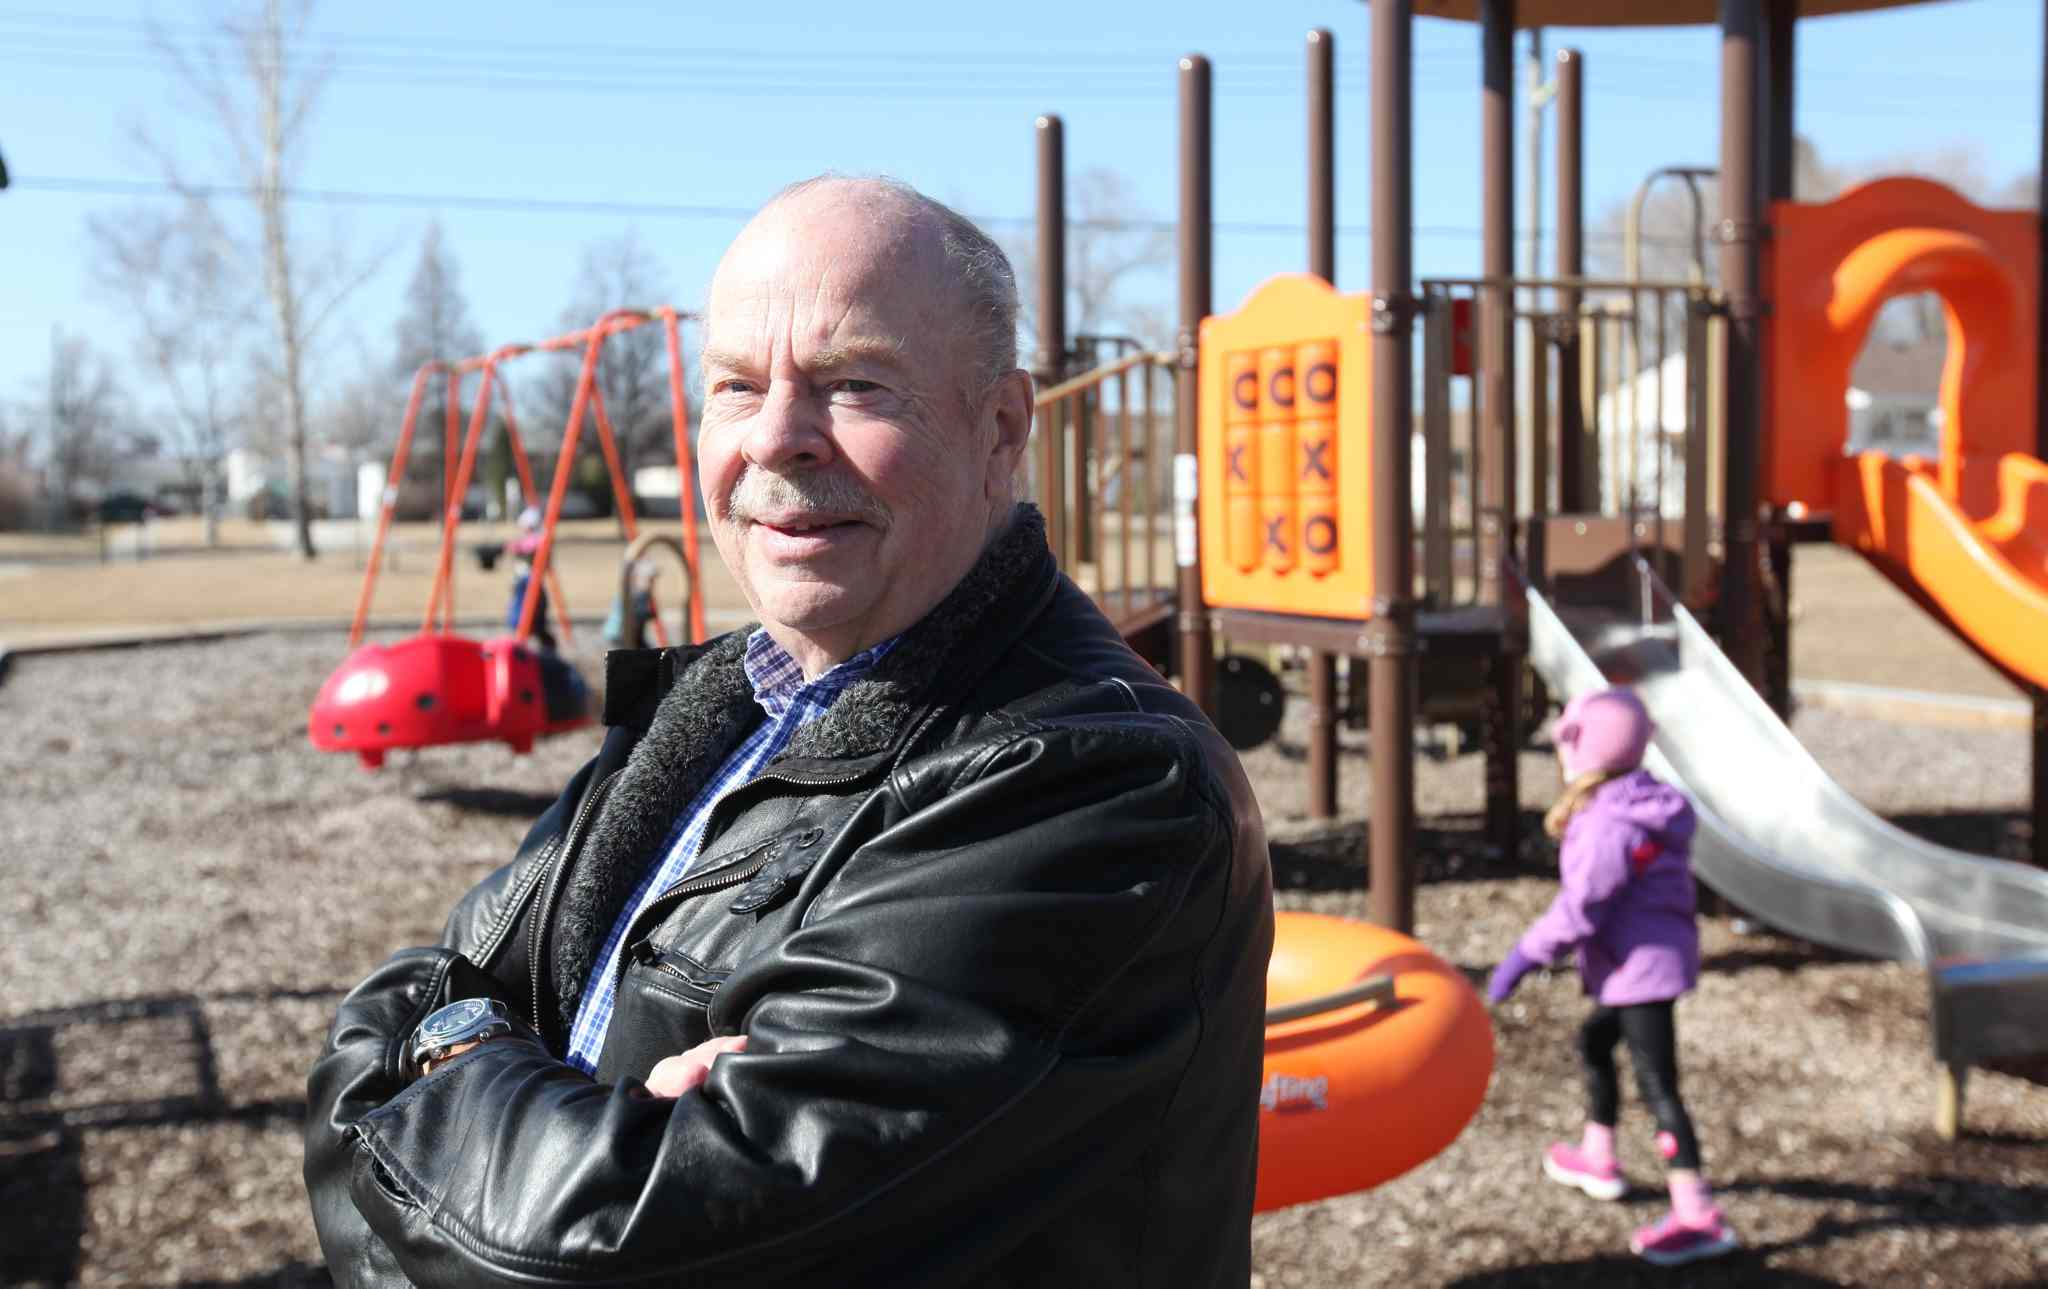 Keith Thomas, who is about to retire as risk manager of the Manitoba School Boards Association, was partly responsible for implementing safety measures on buses and playgrounds to keep kids safe.